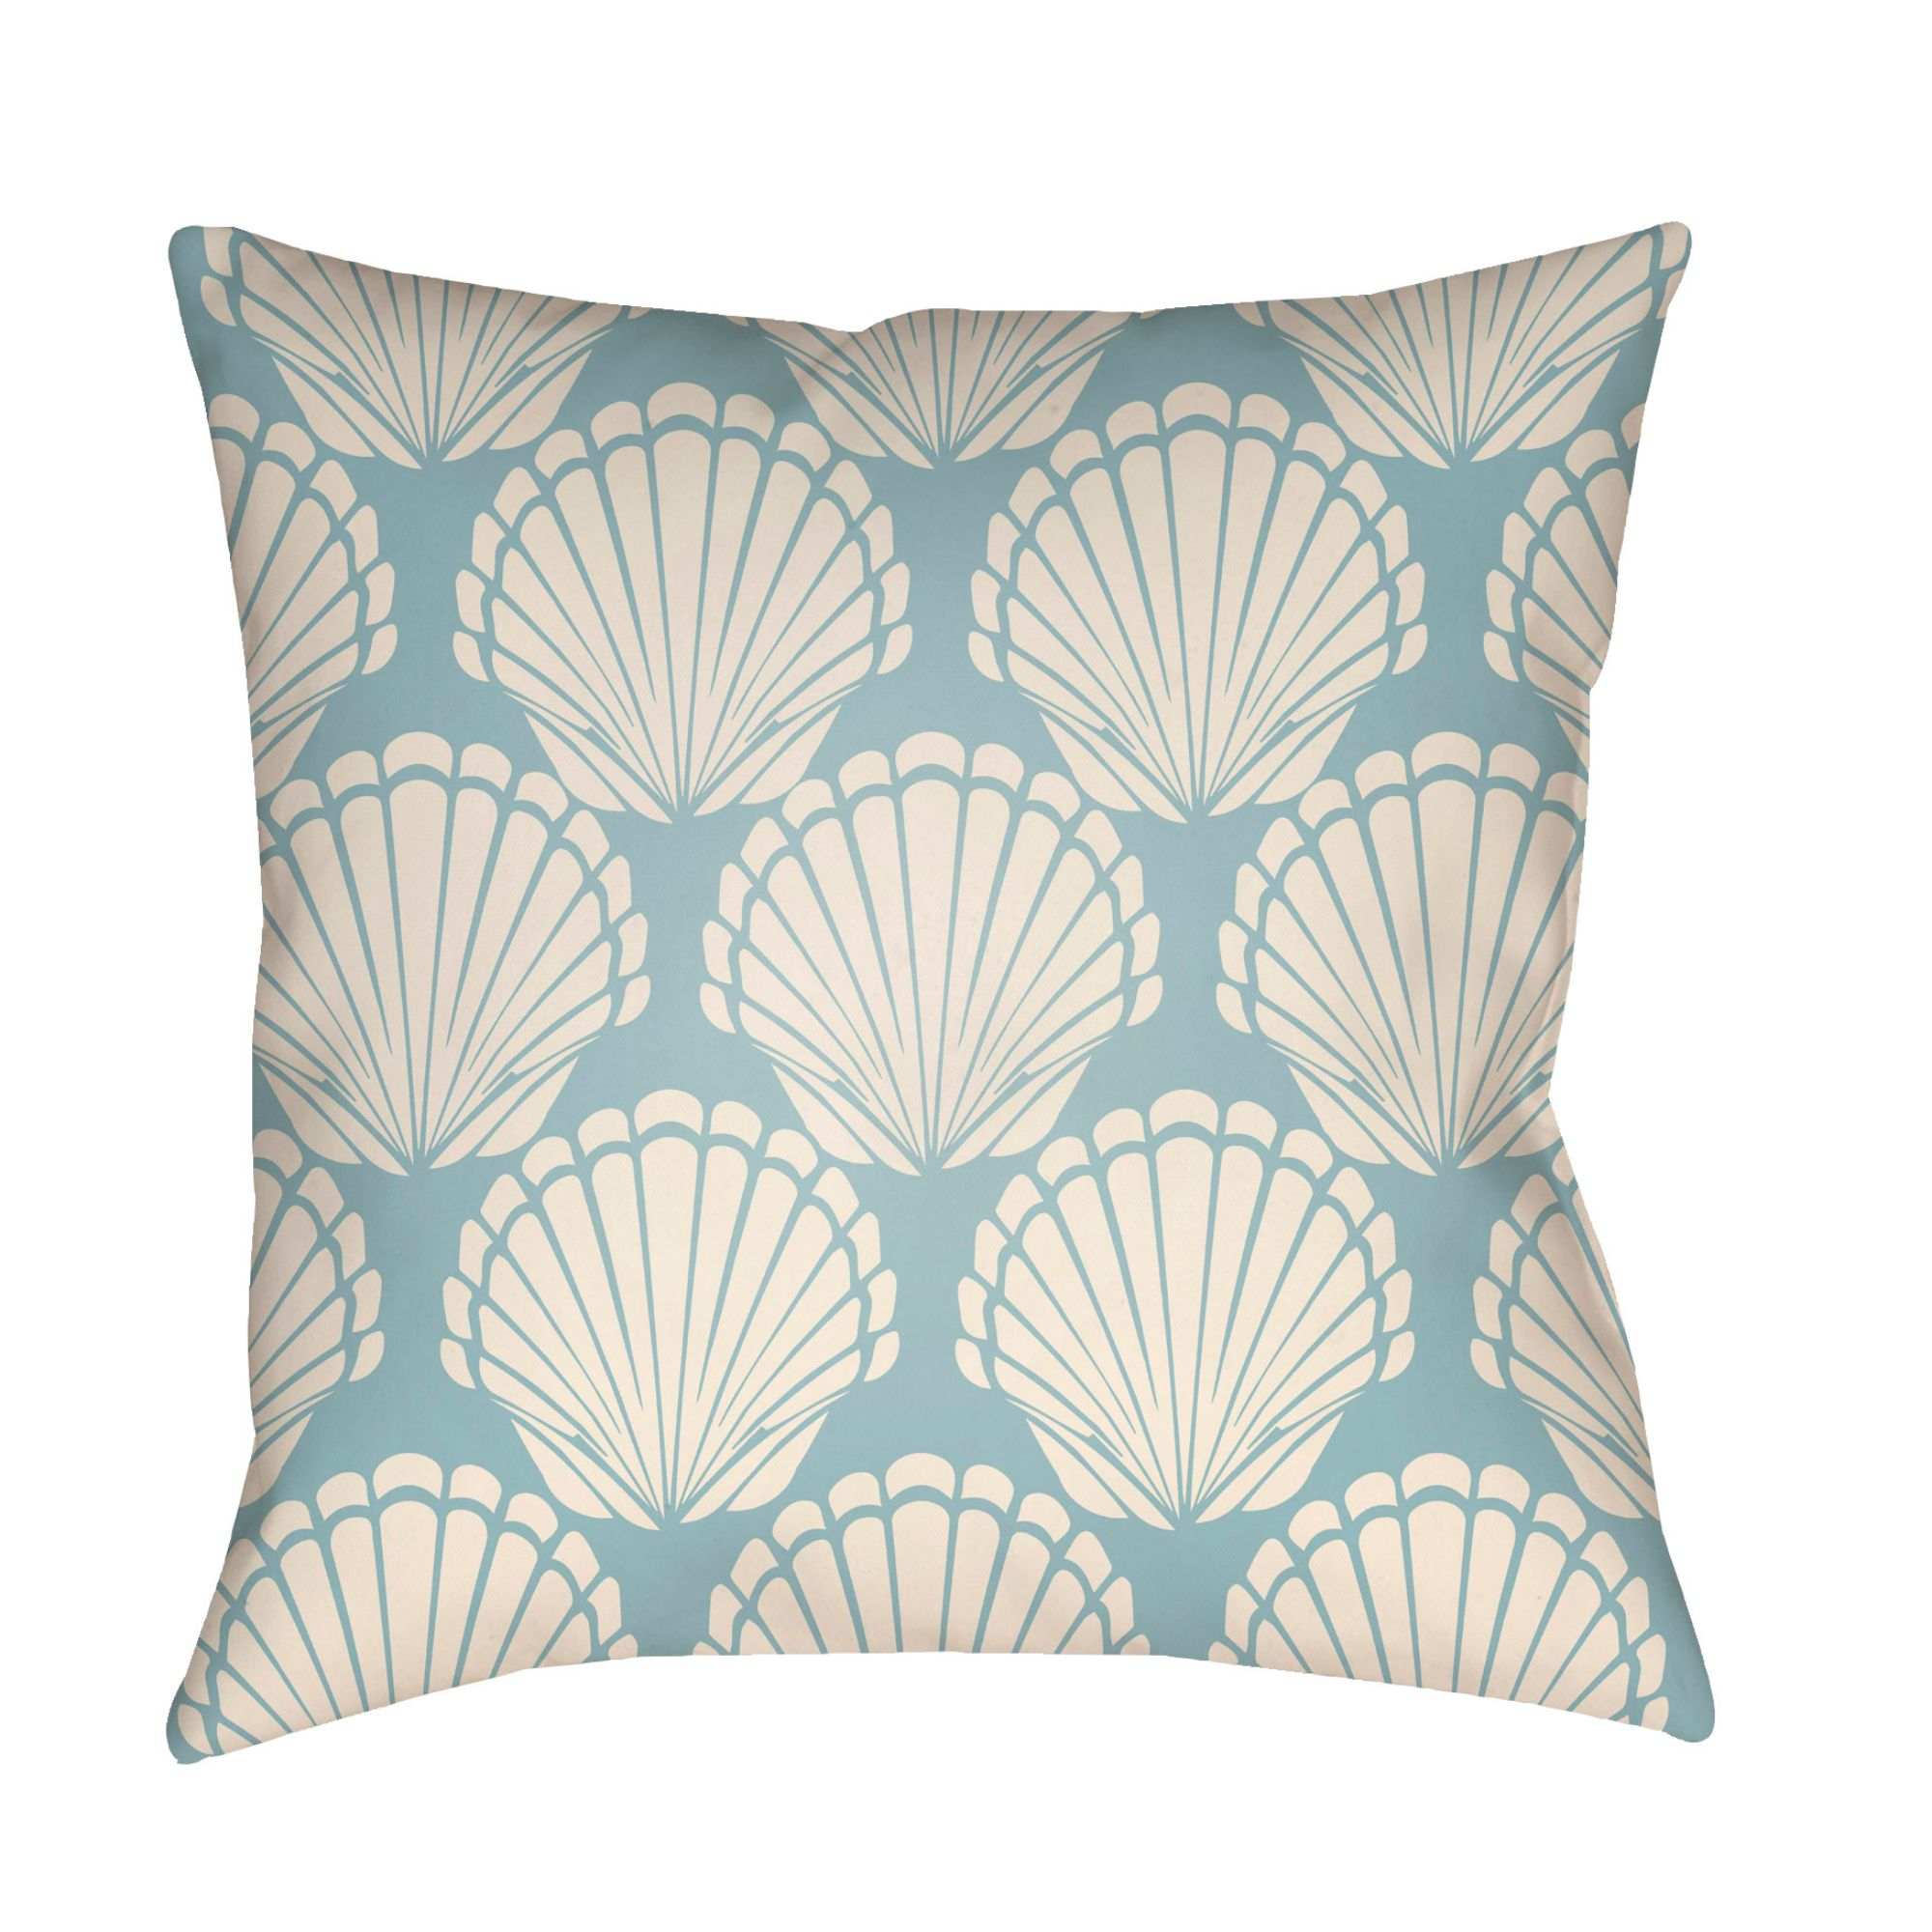 20 blue and white seashells printed throw pillow cover